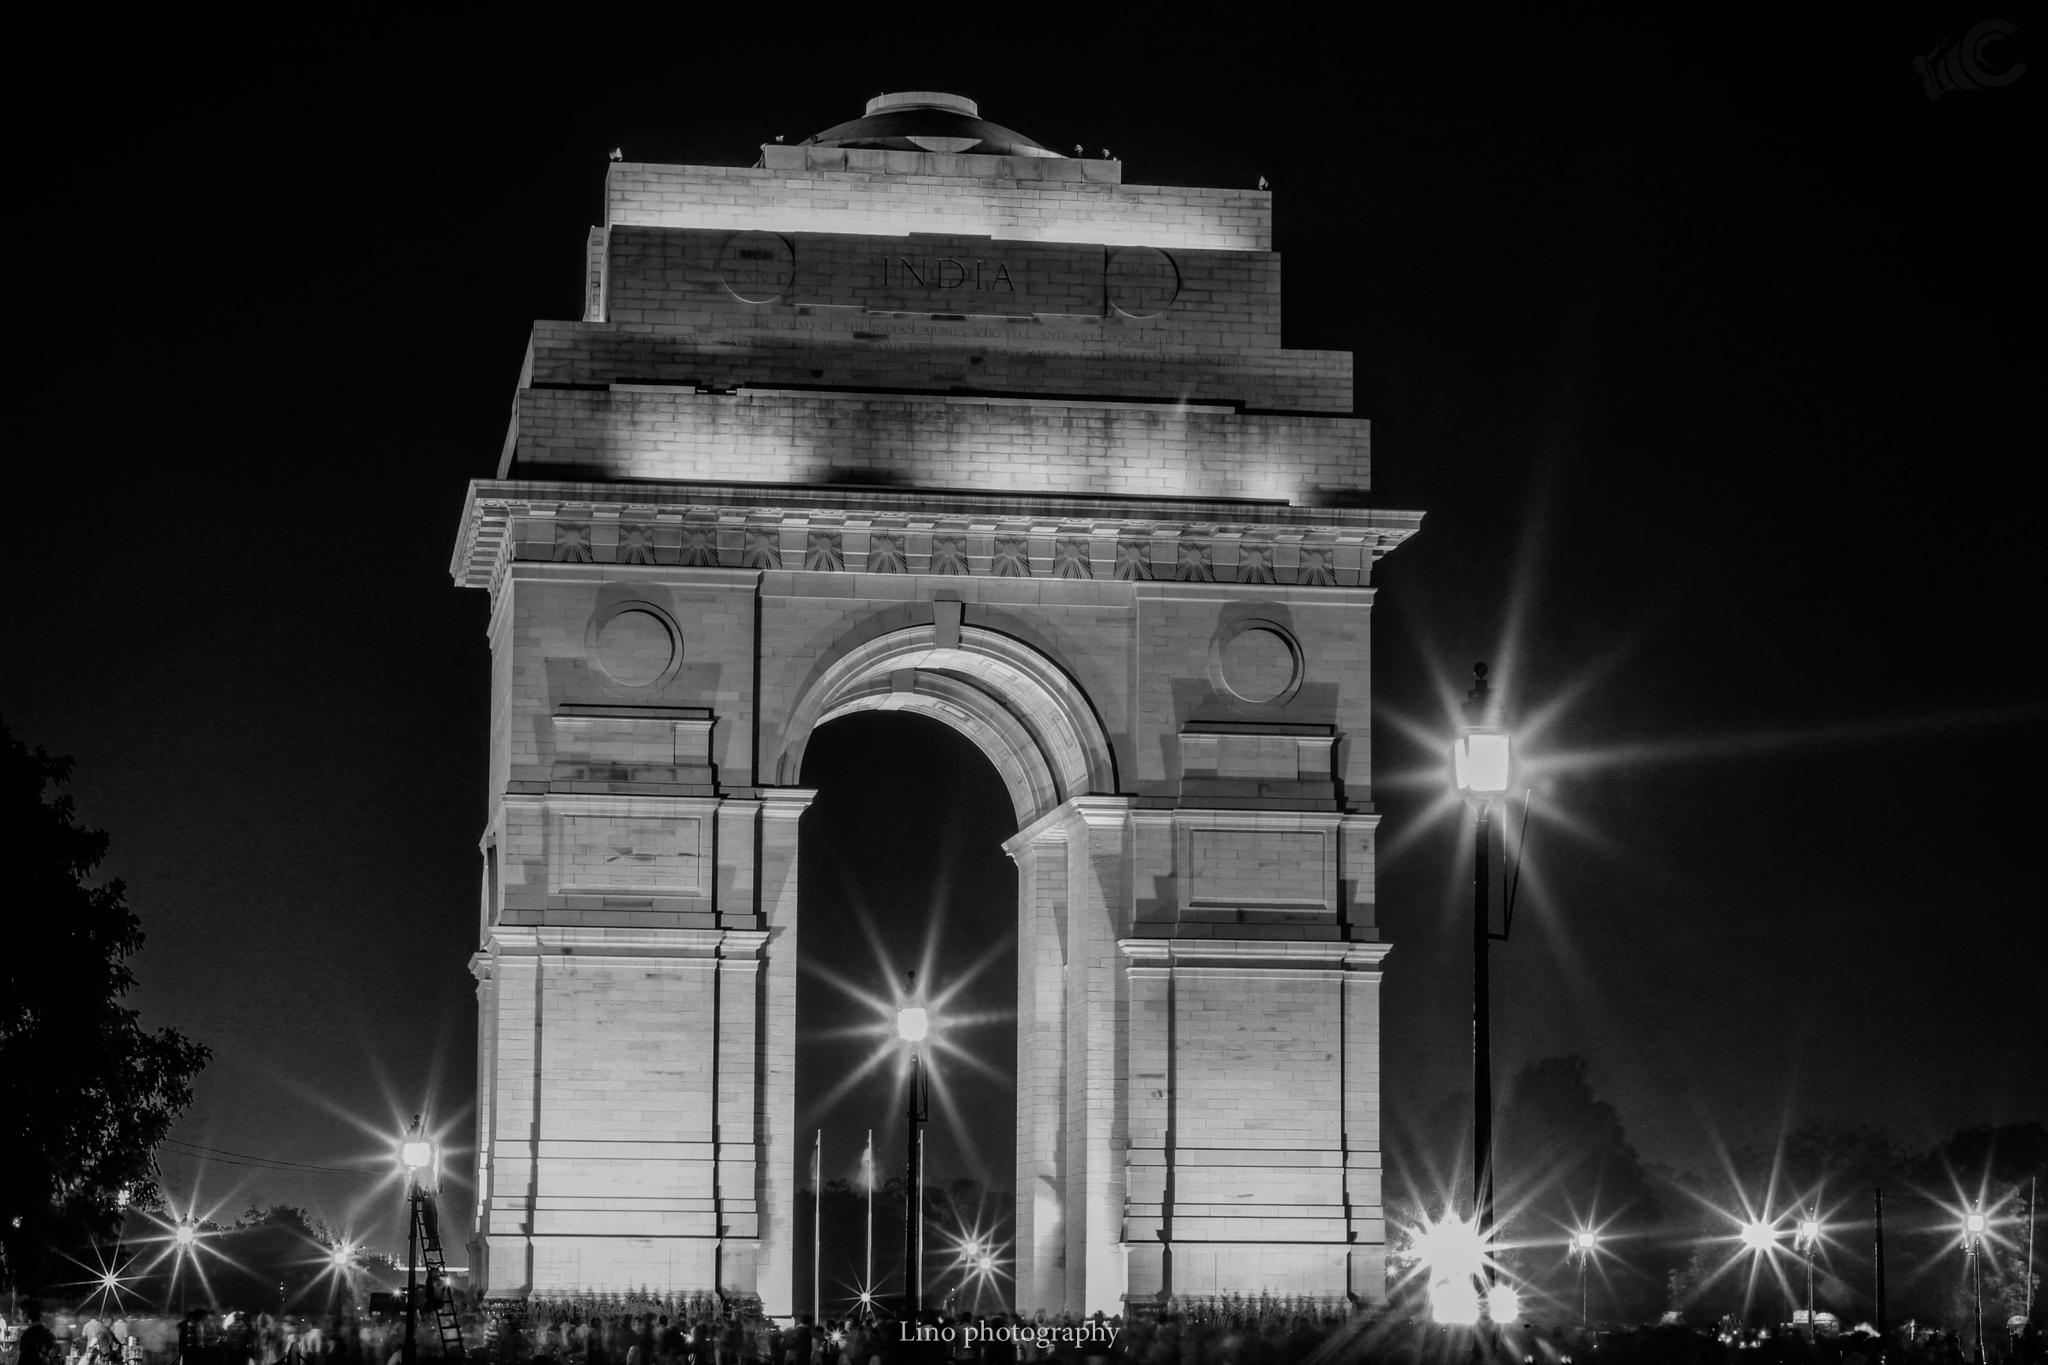 INDIAGATE by Lino jacob